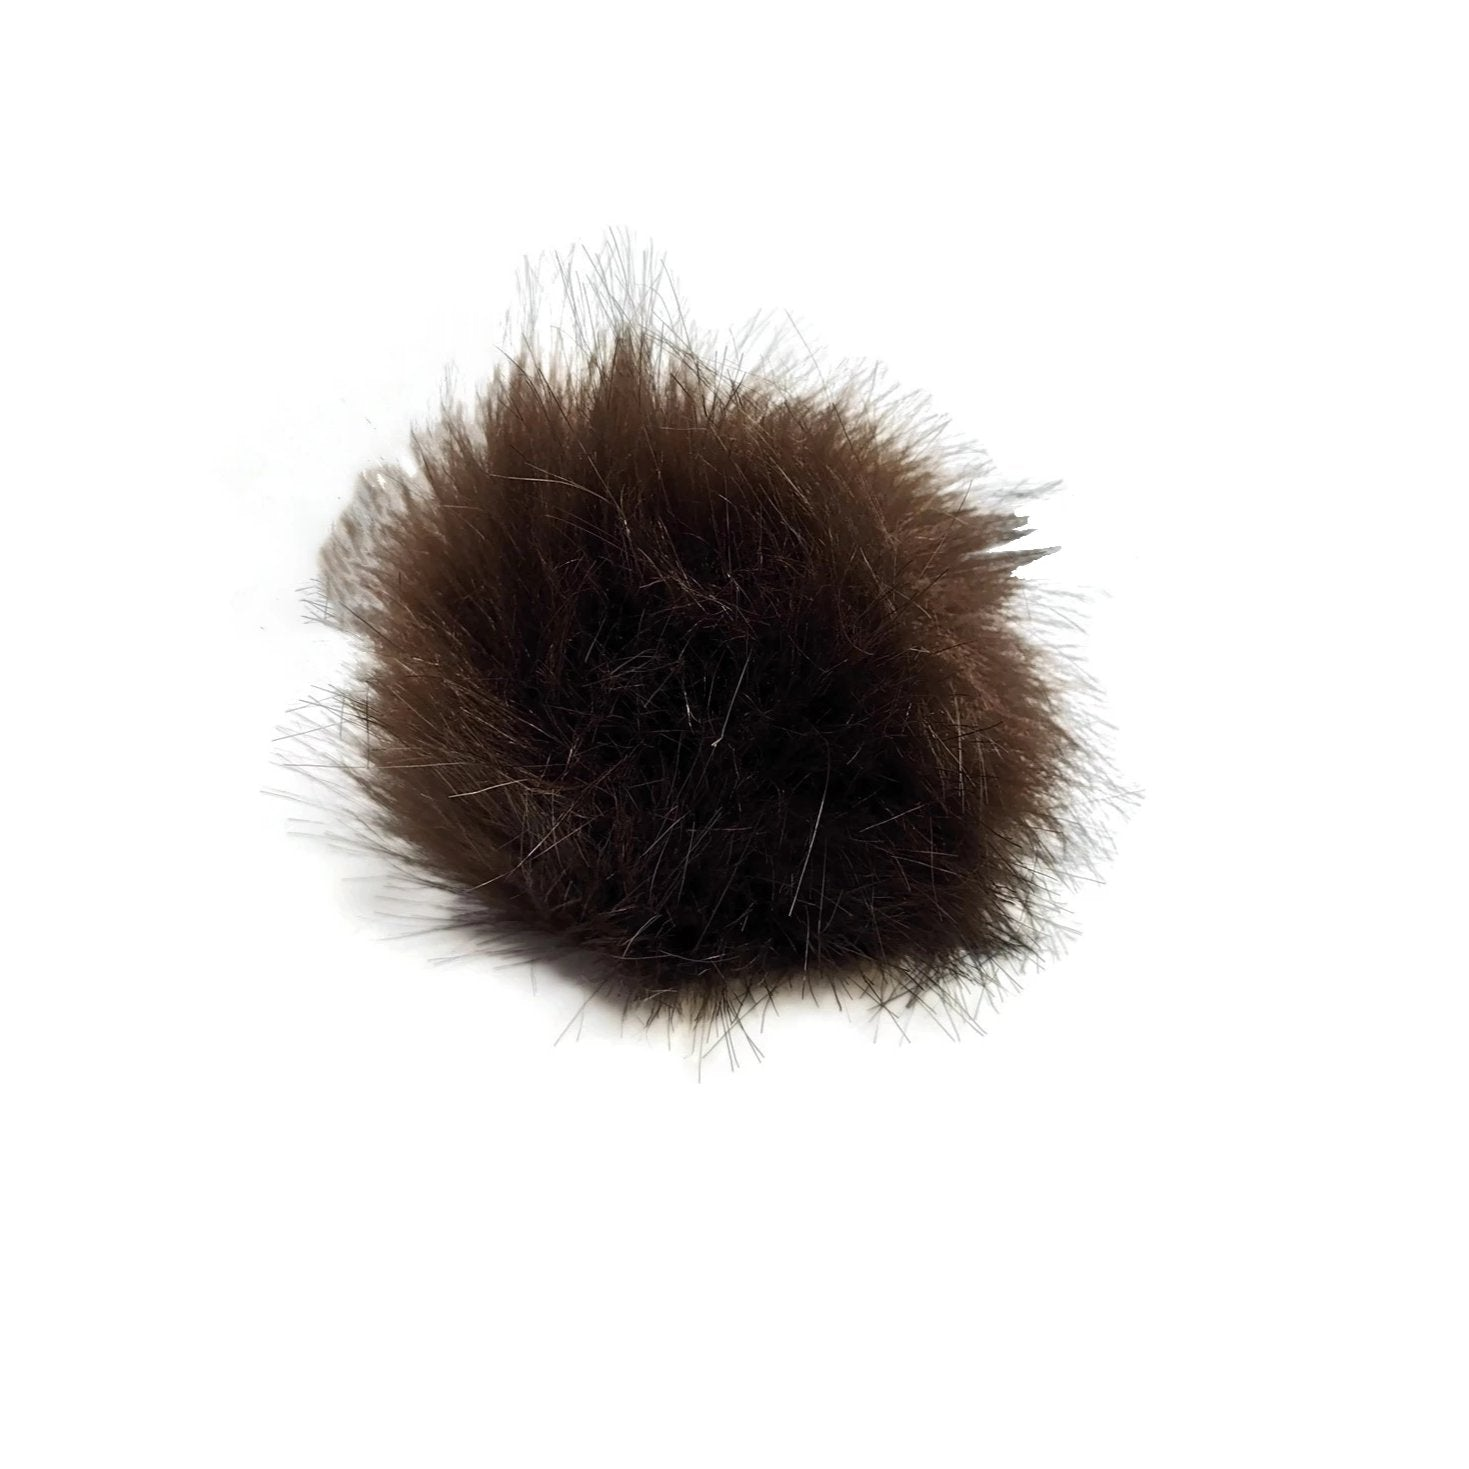 Brown pom-pom with snaps (fake fox fur)